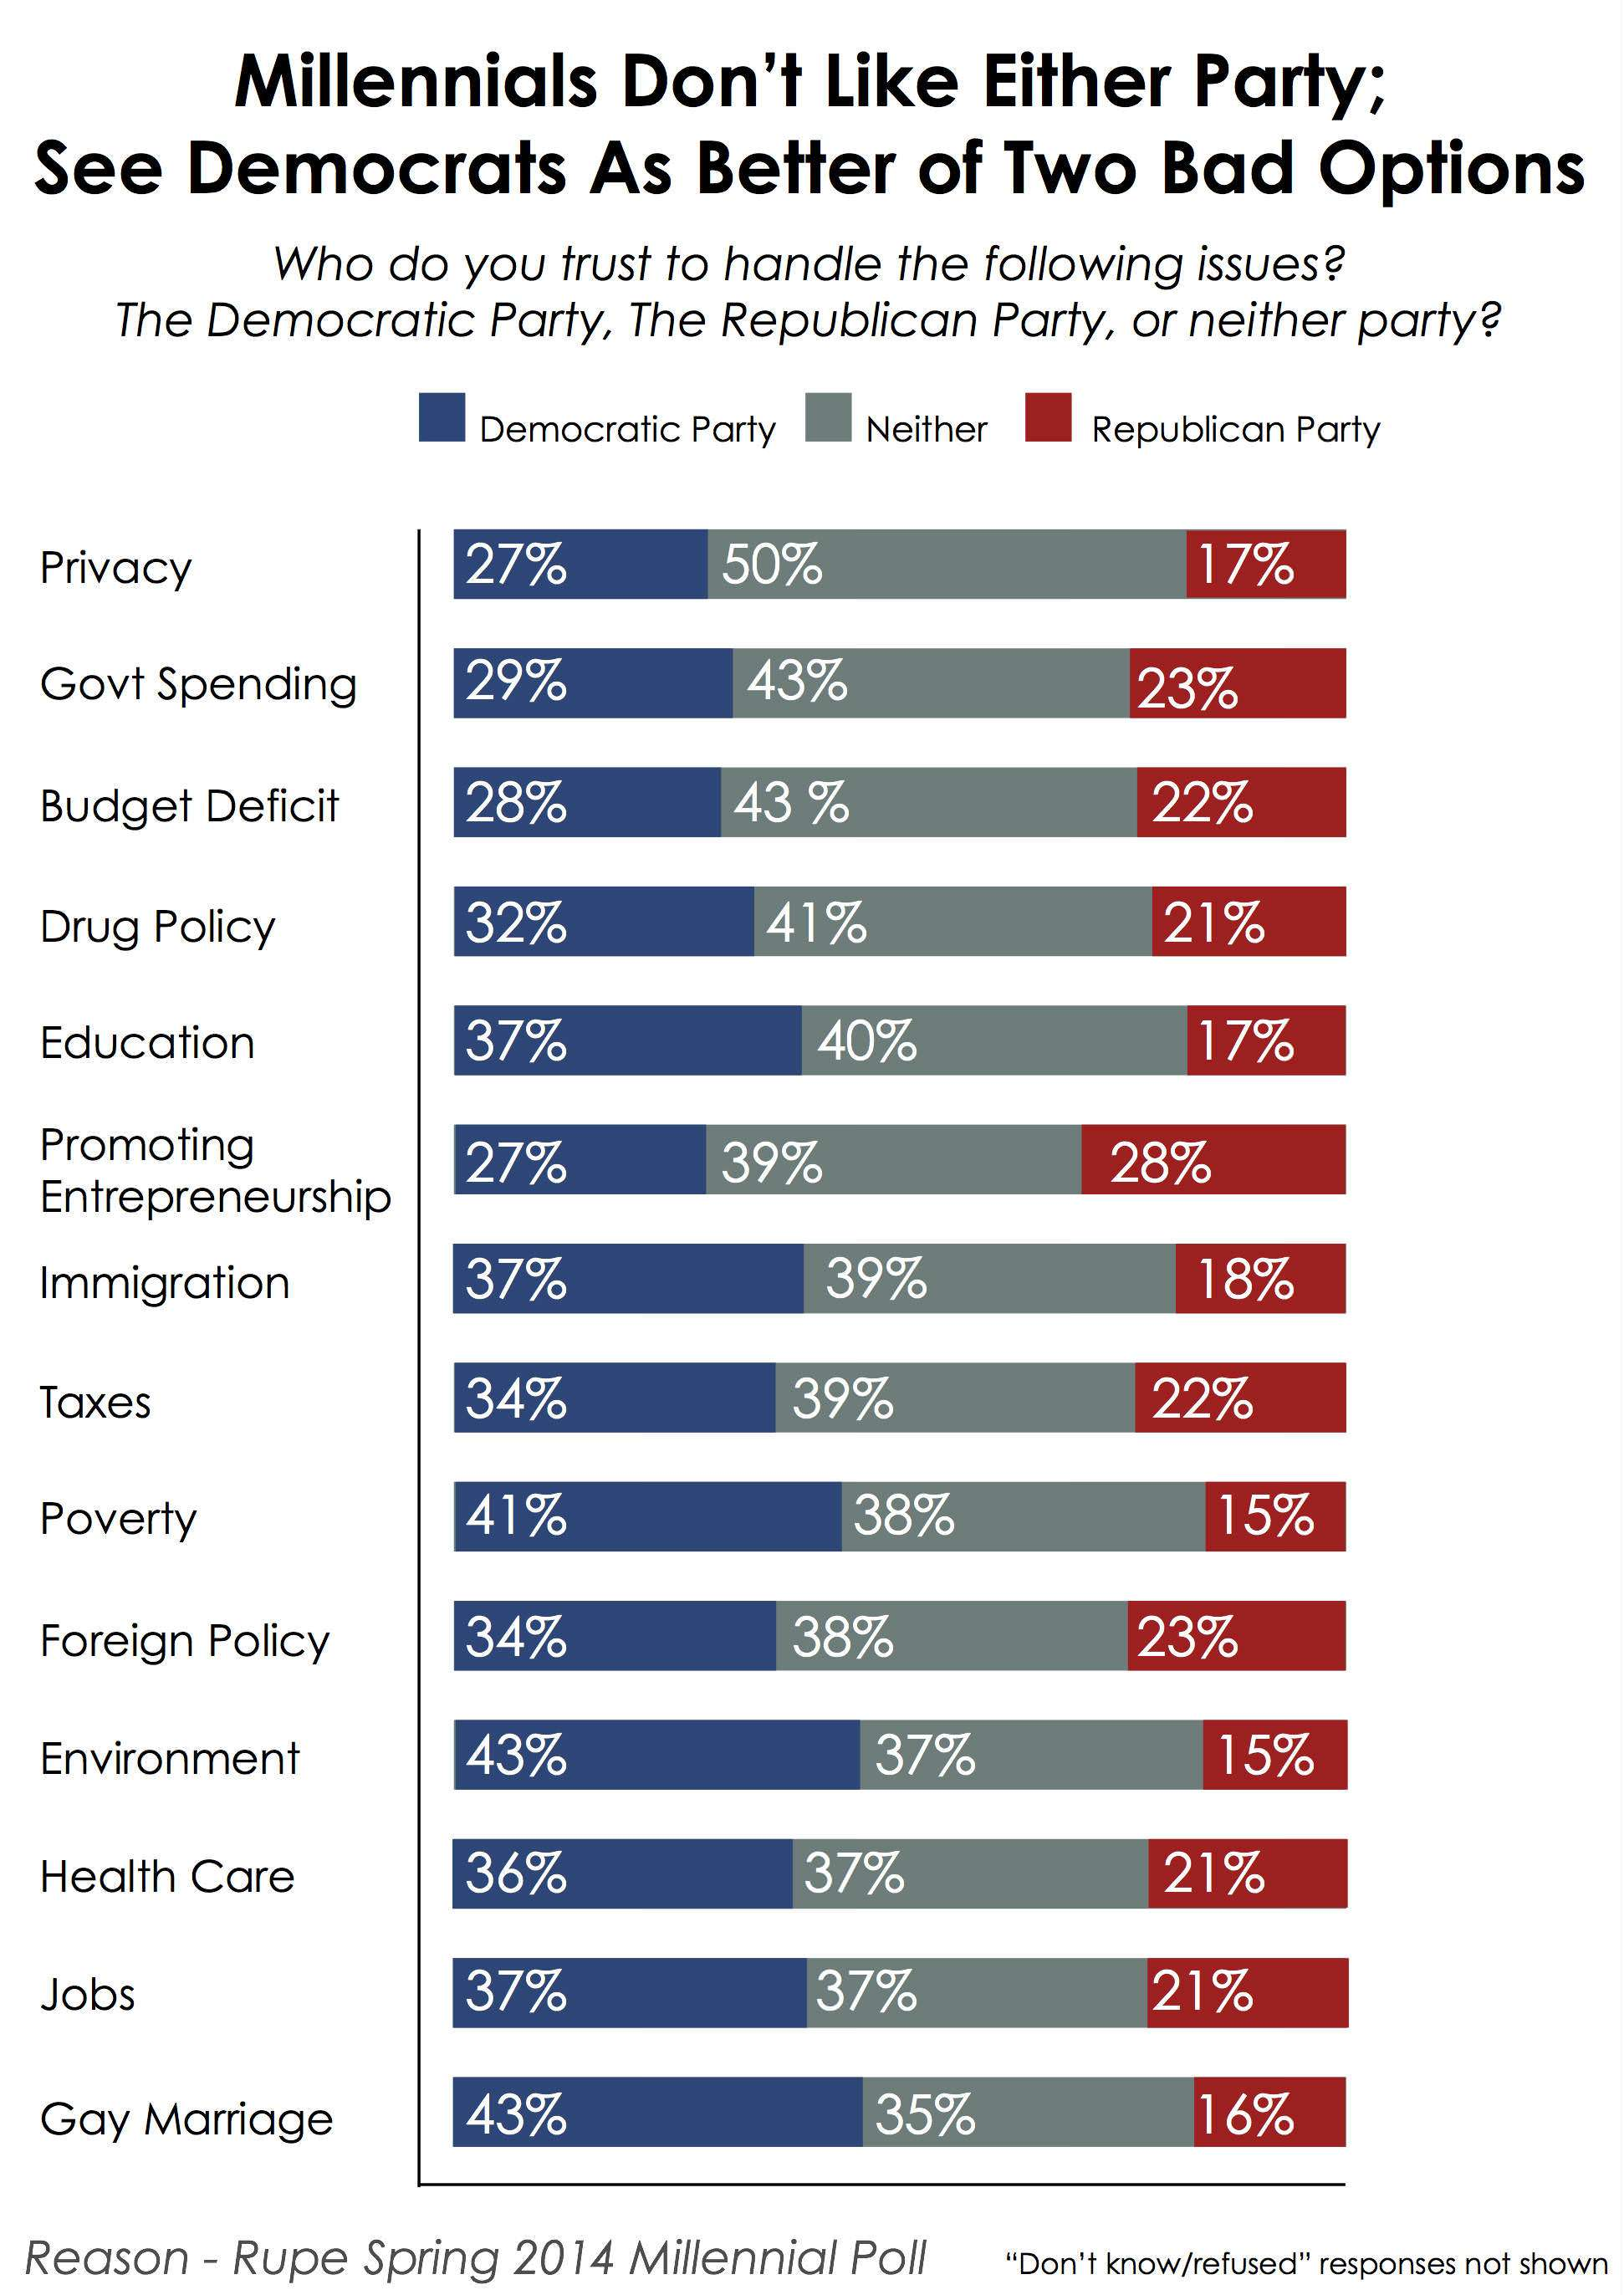 When asked who they trust most to handle a series of issues neither democrats nor republicans receive a majority